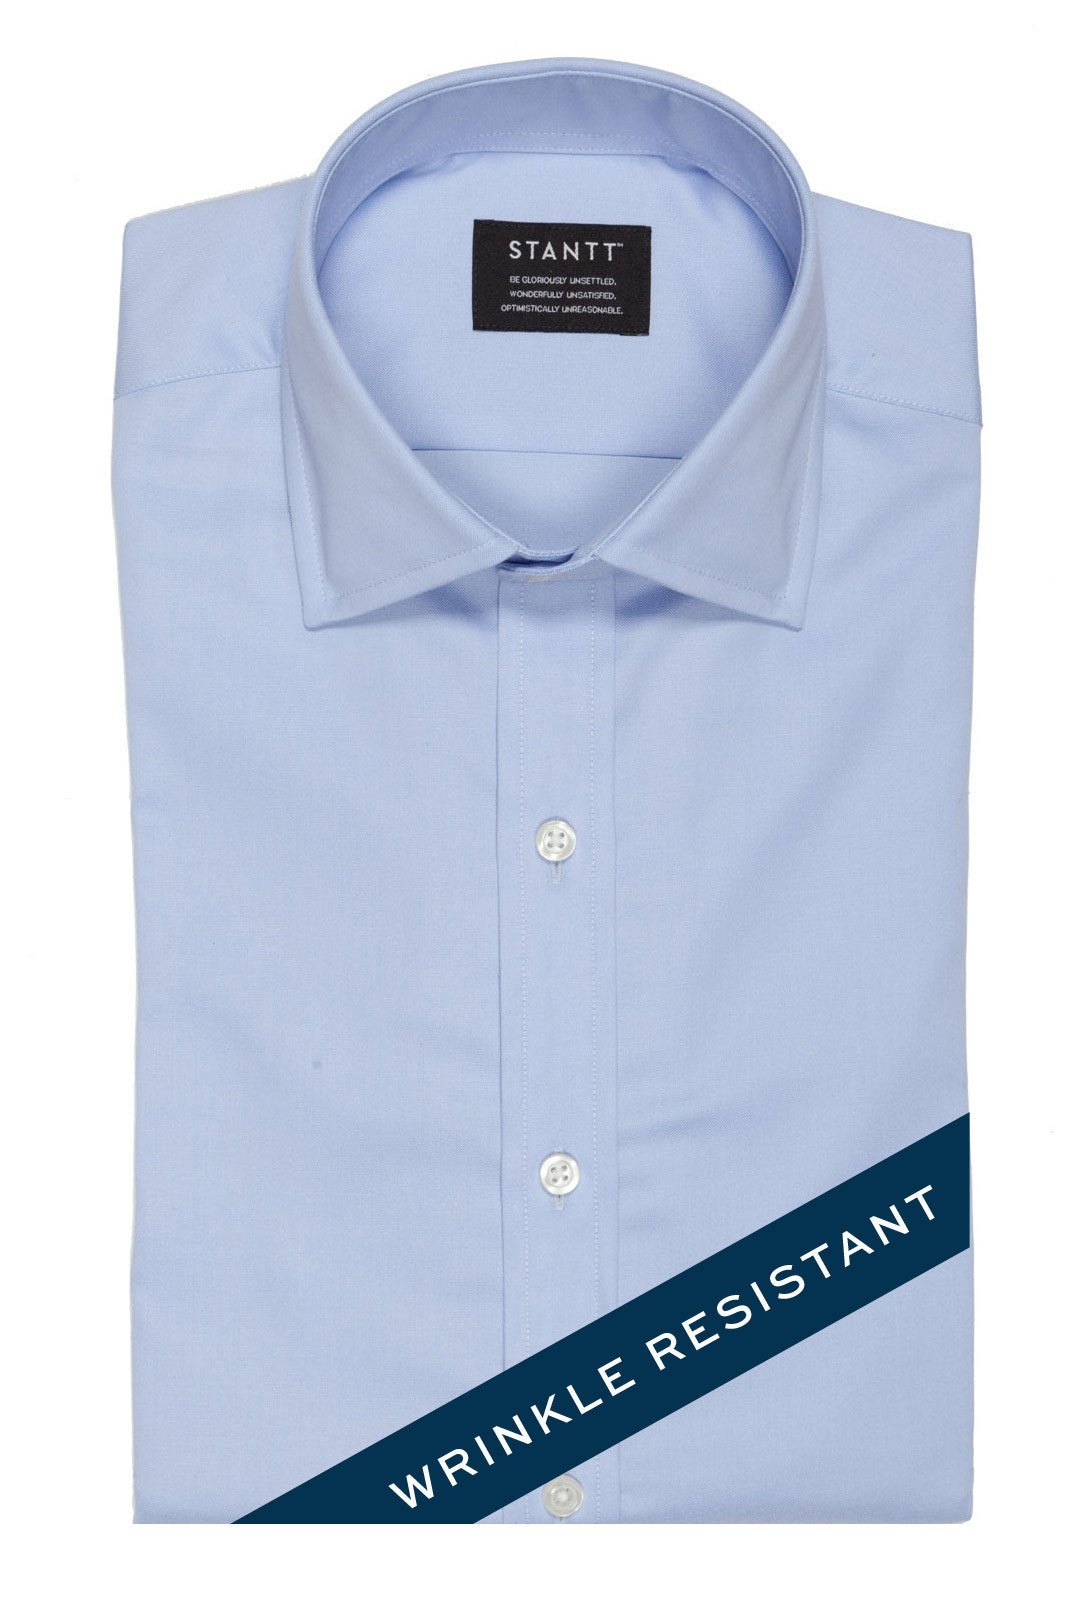 Wrinkle-Resistant Light Blue Oxford